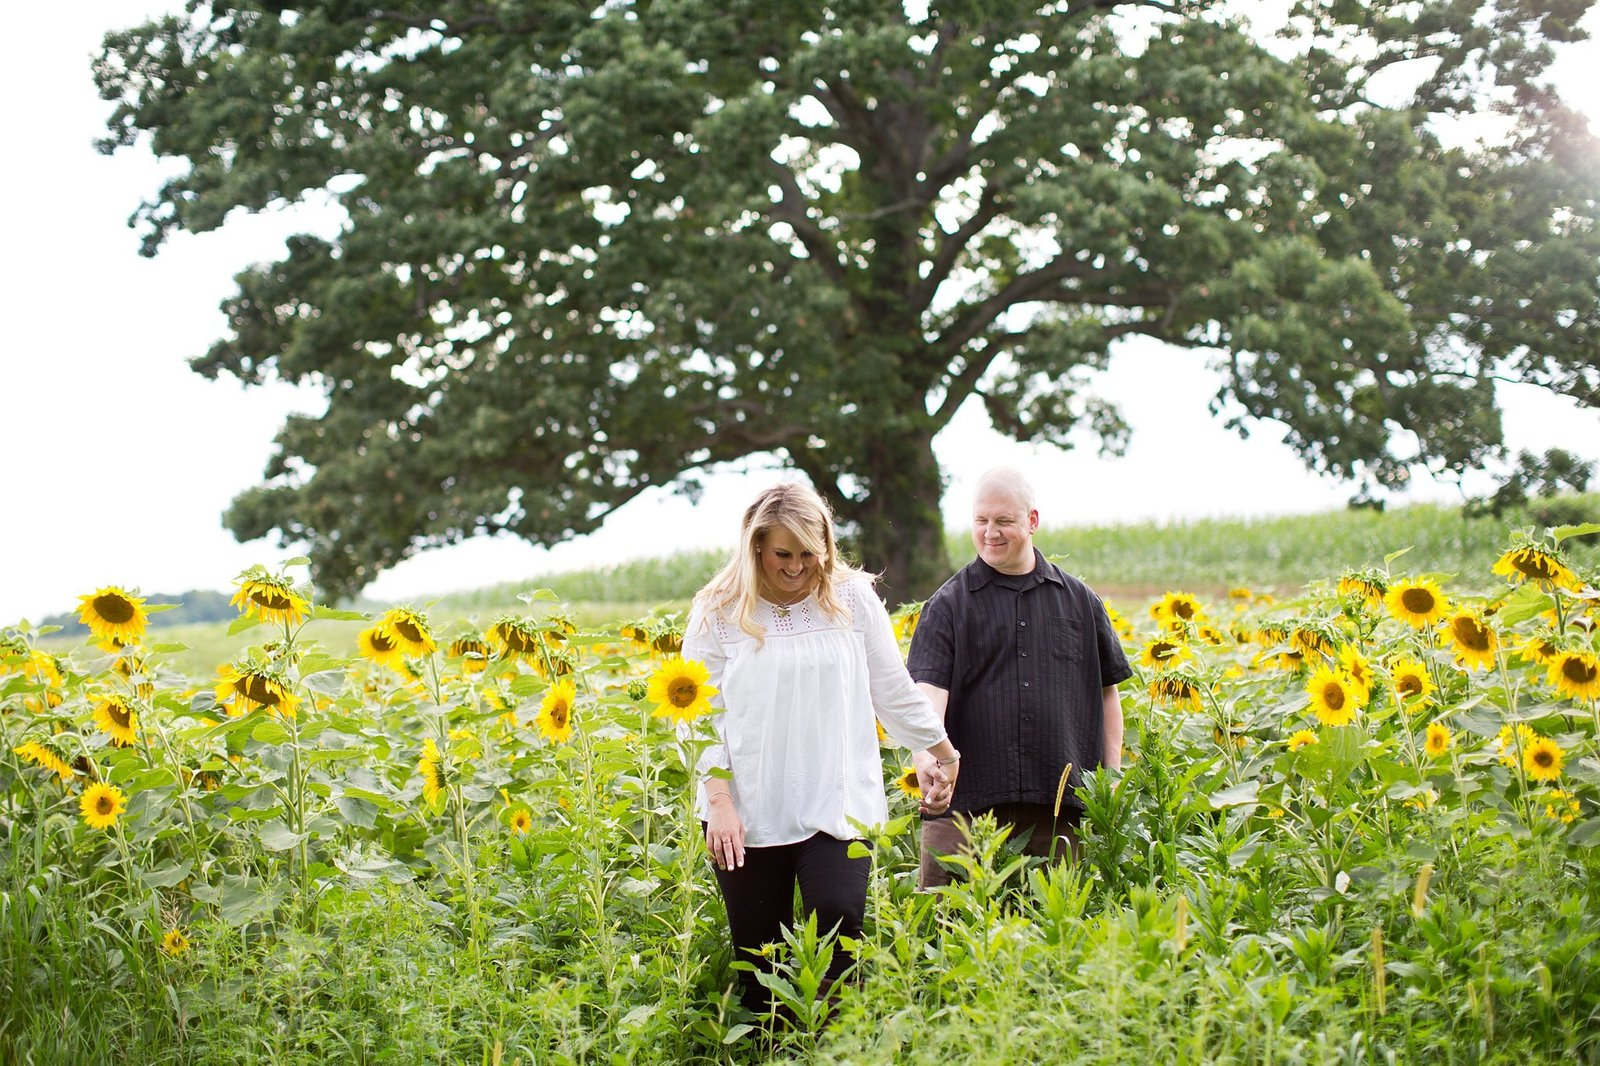 Megan+Scott{engagement}_021_WEB